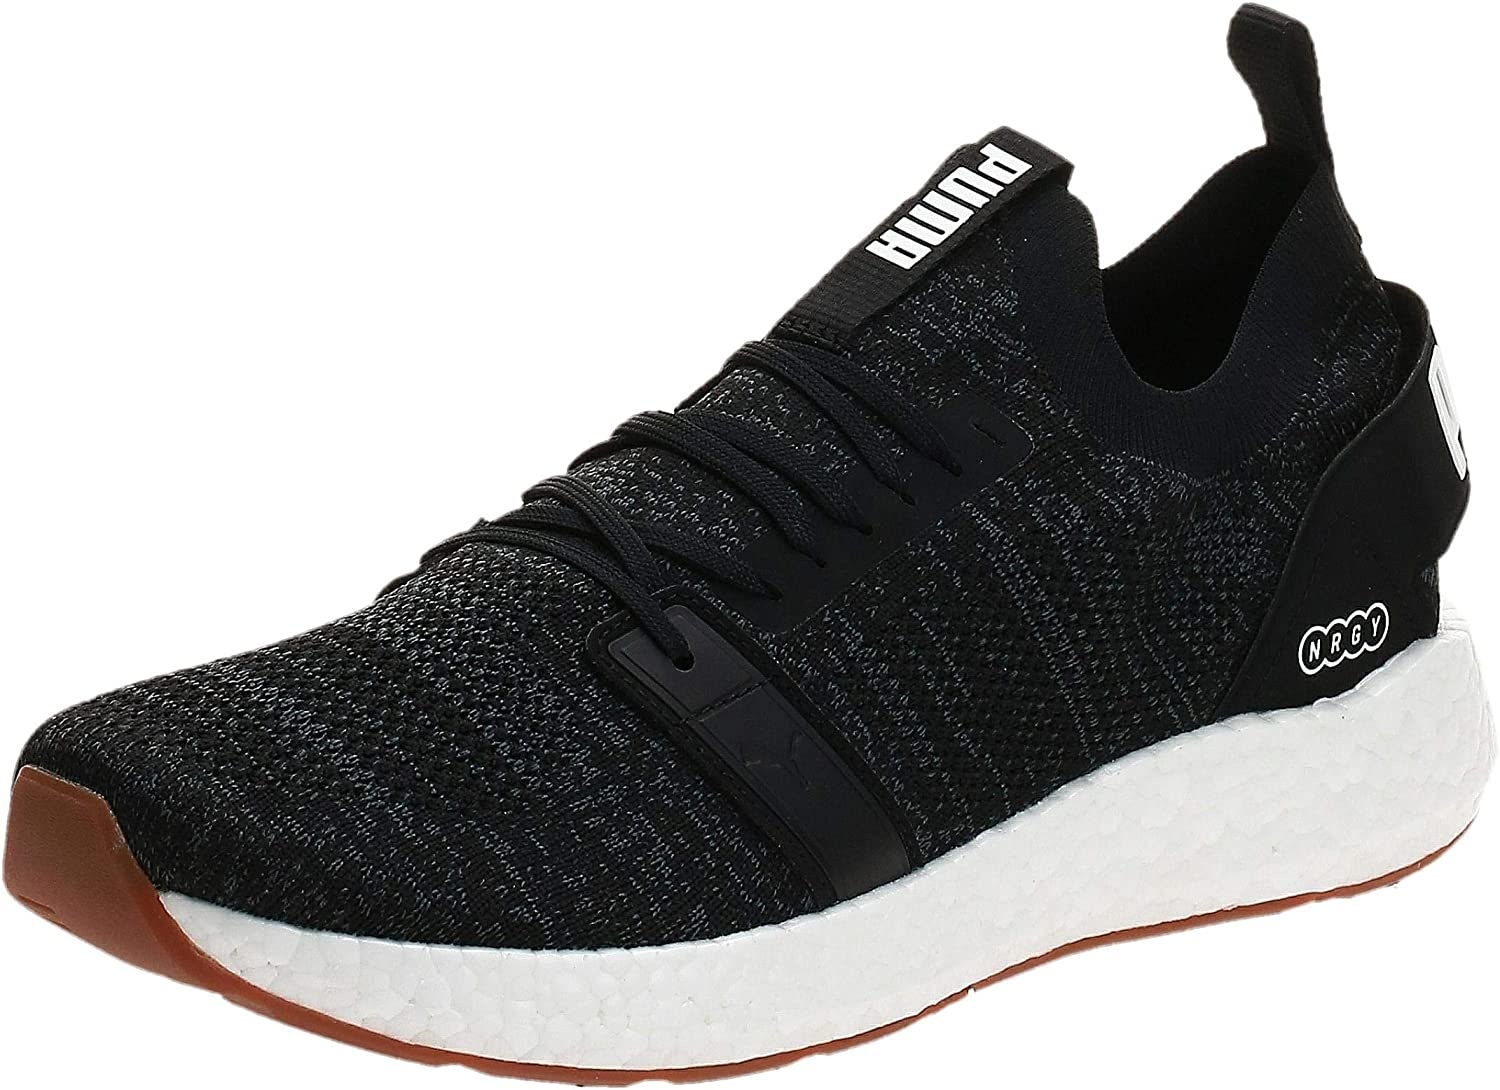 Puma New sales Men's Running Shoes Iron Gate At the price White Black